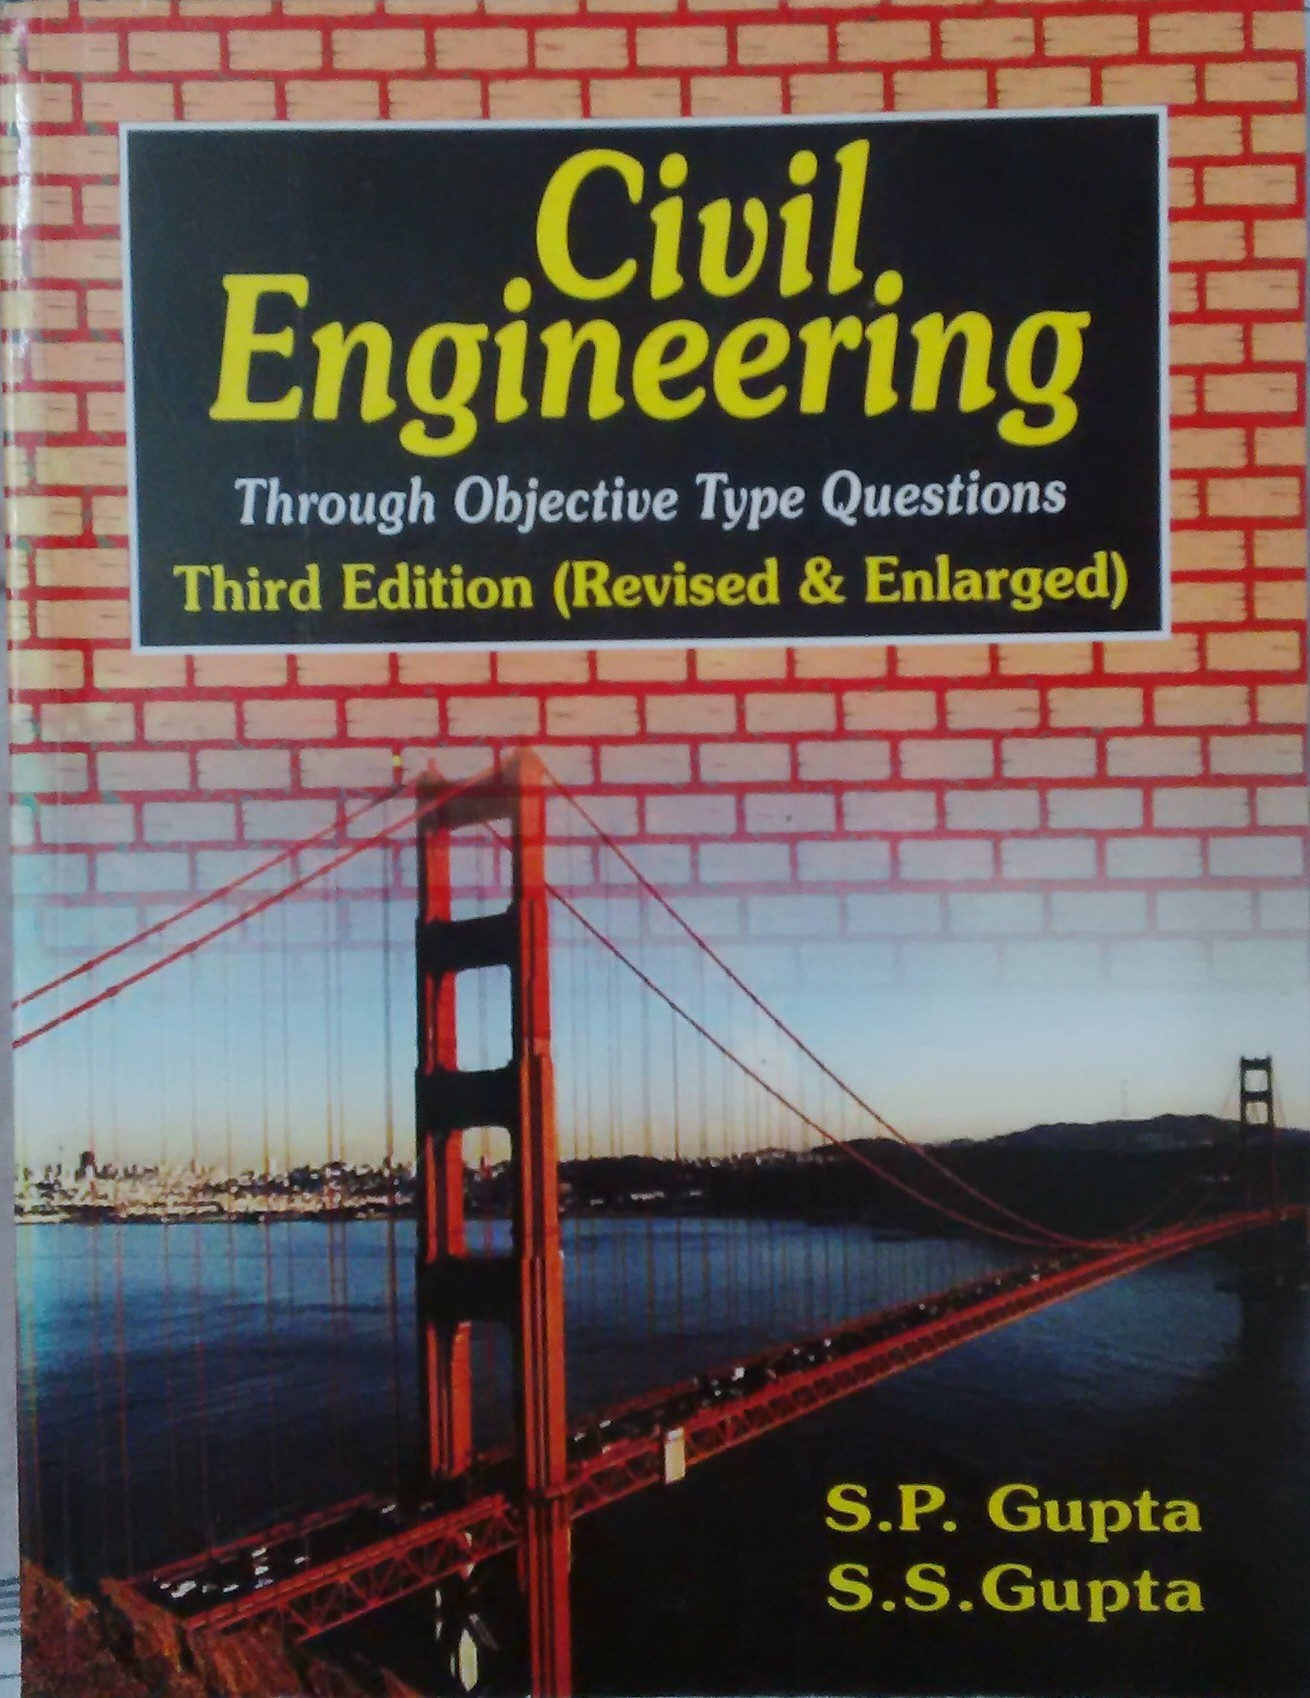 engineering book Online shopping for mechanical engineering from a great selection at books store.